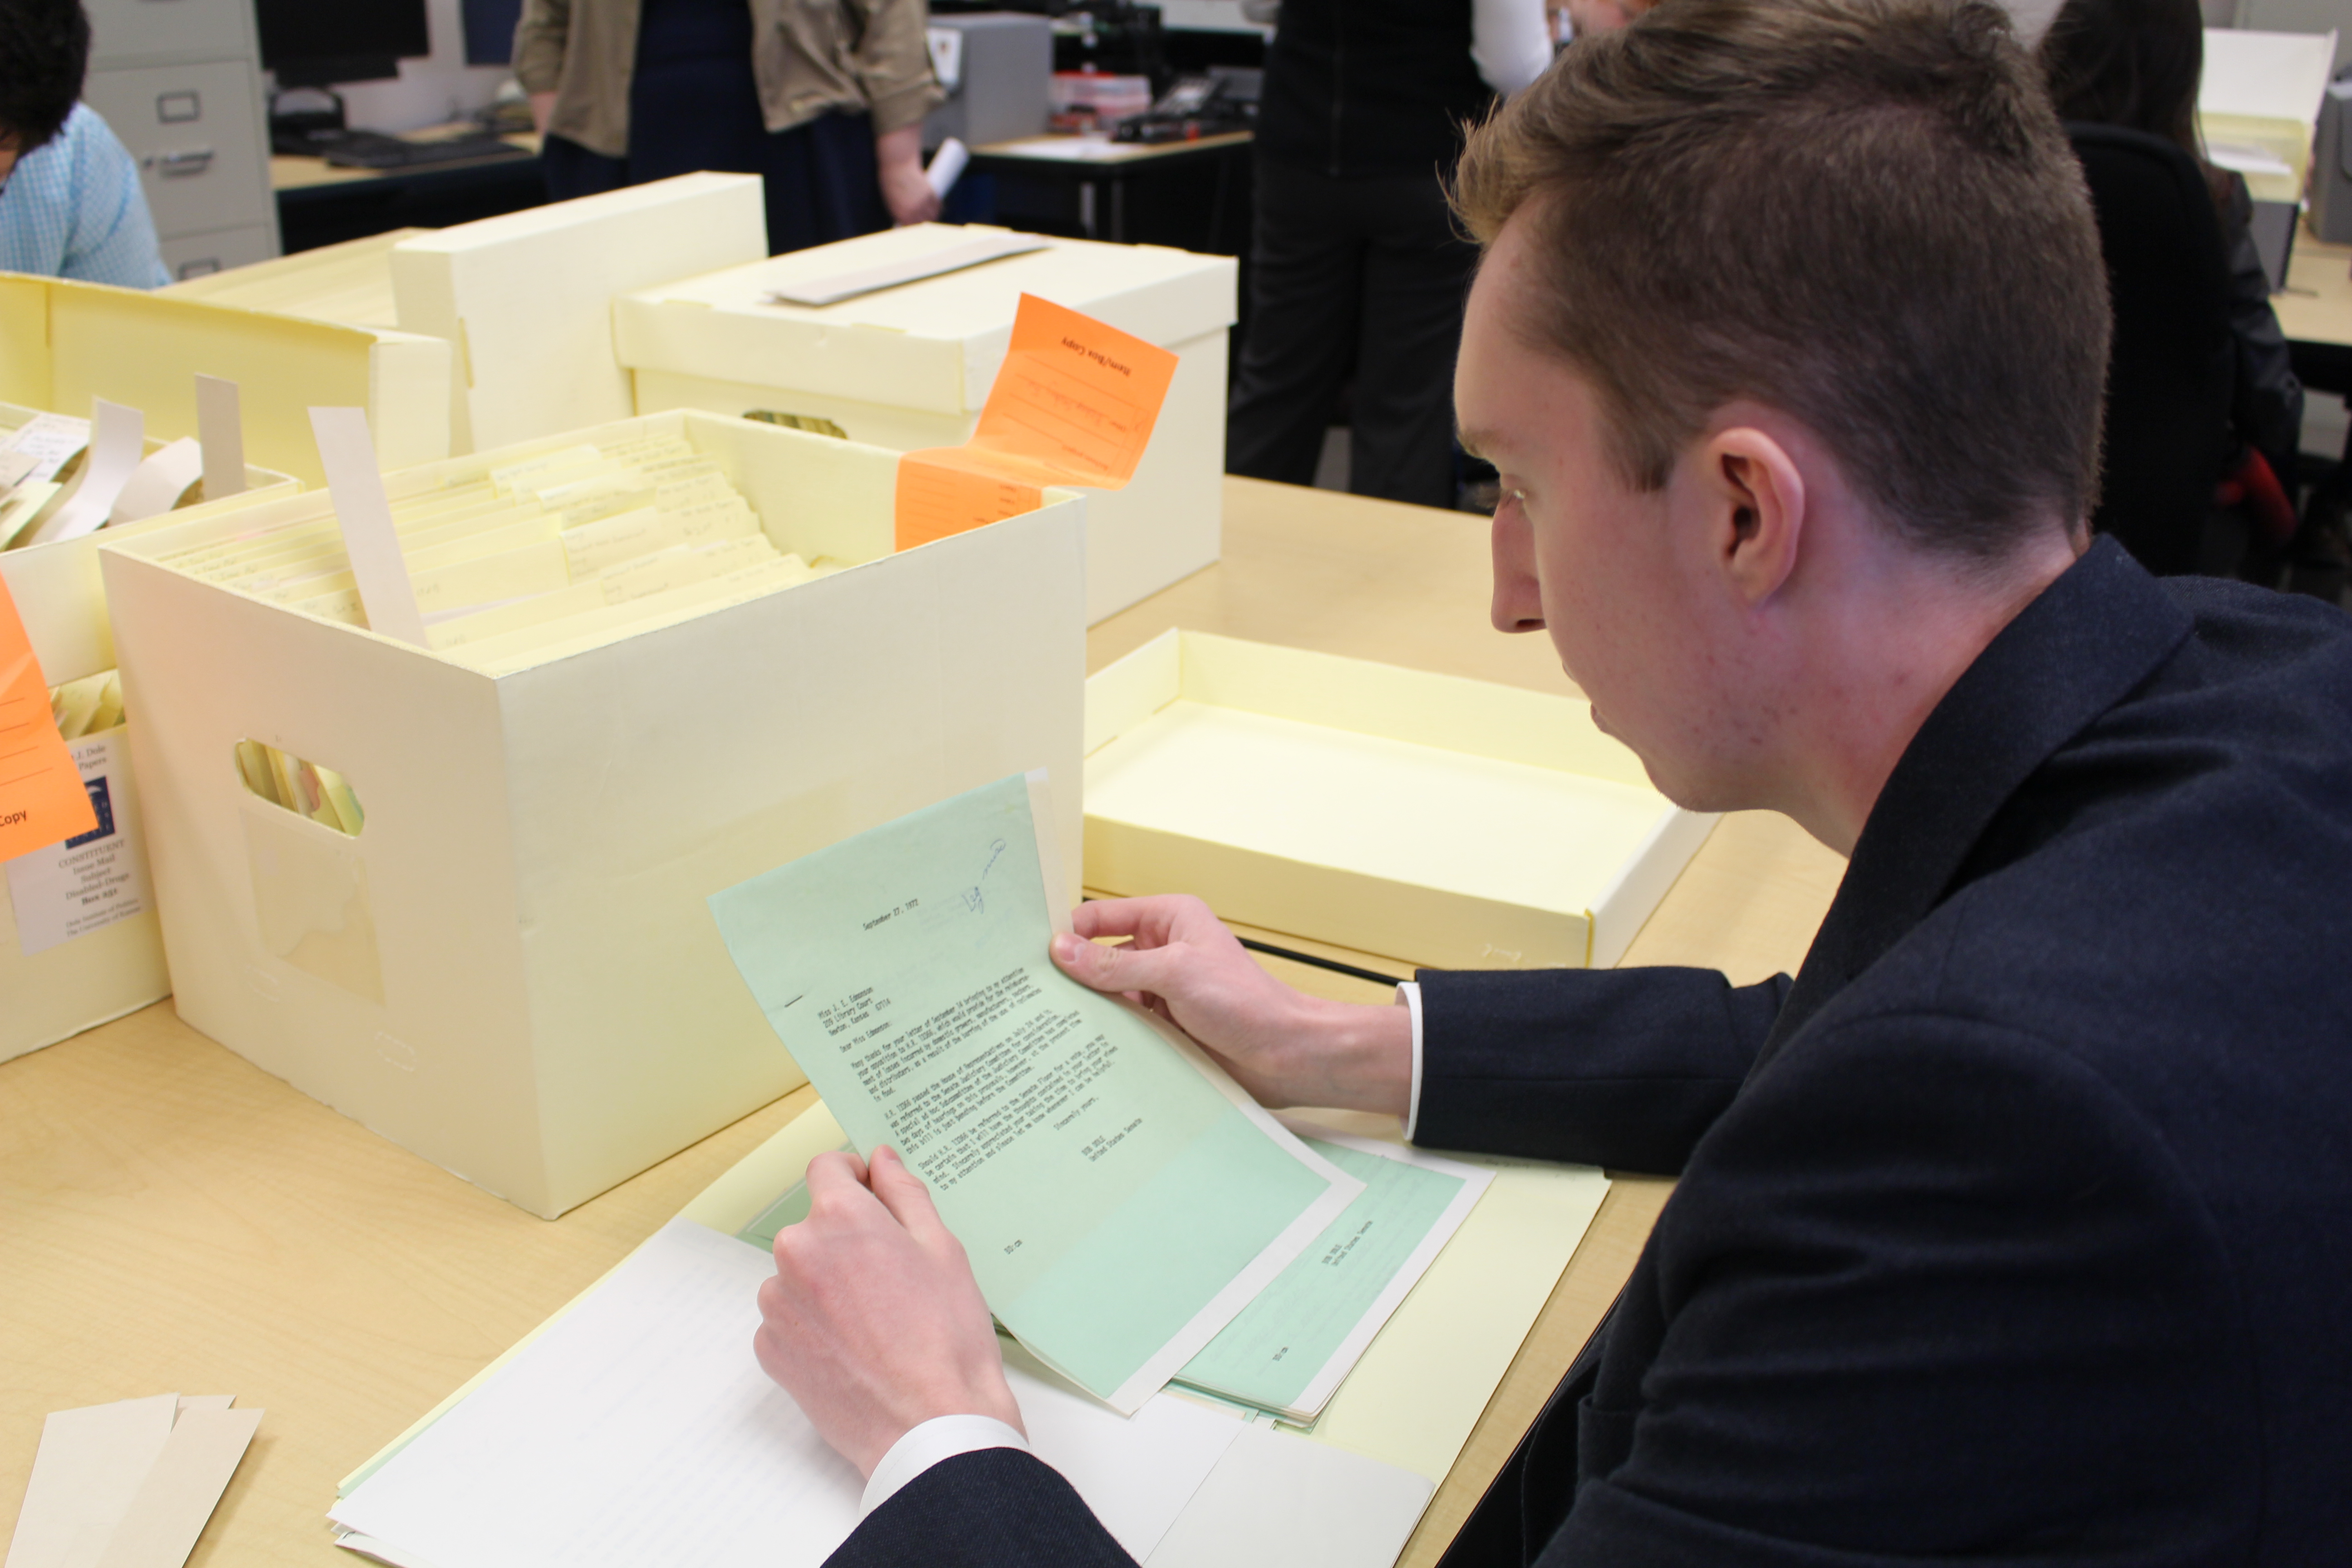 A student researcher reads through archival materials